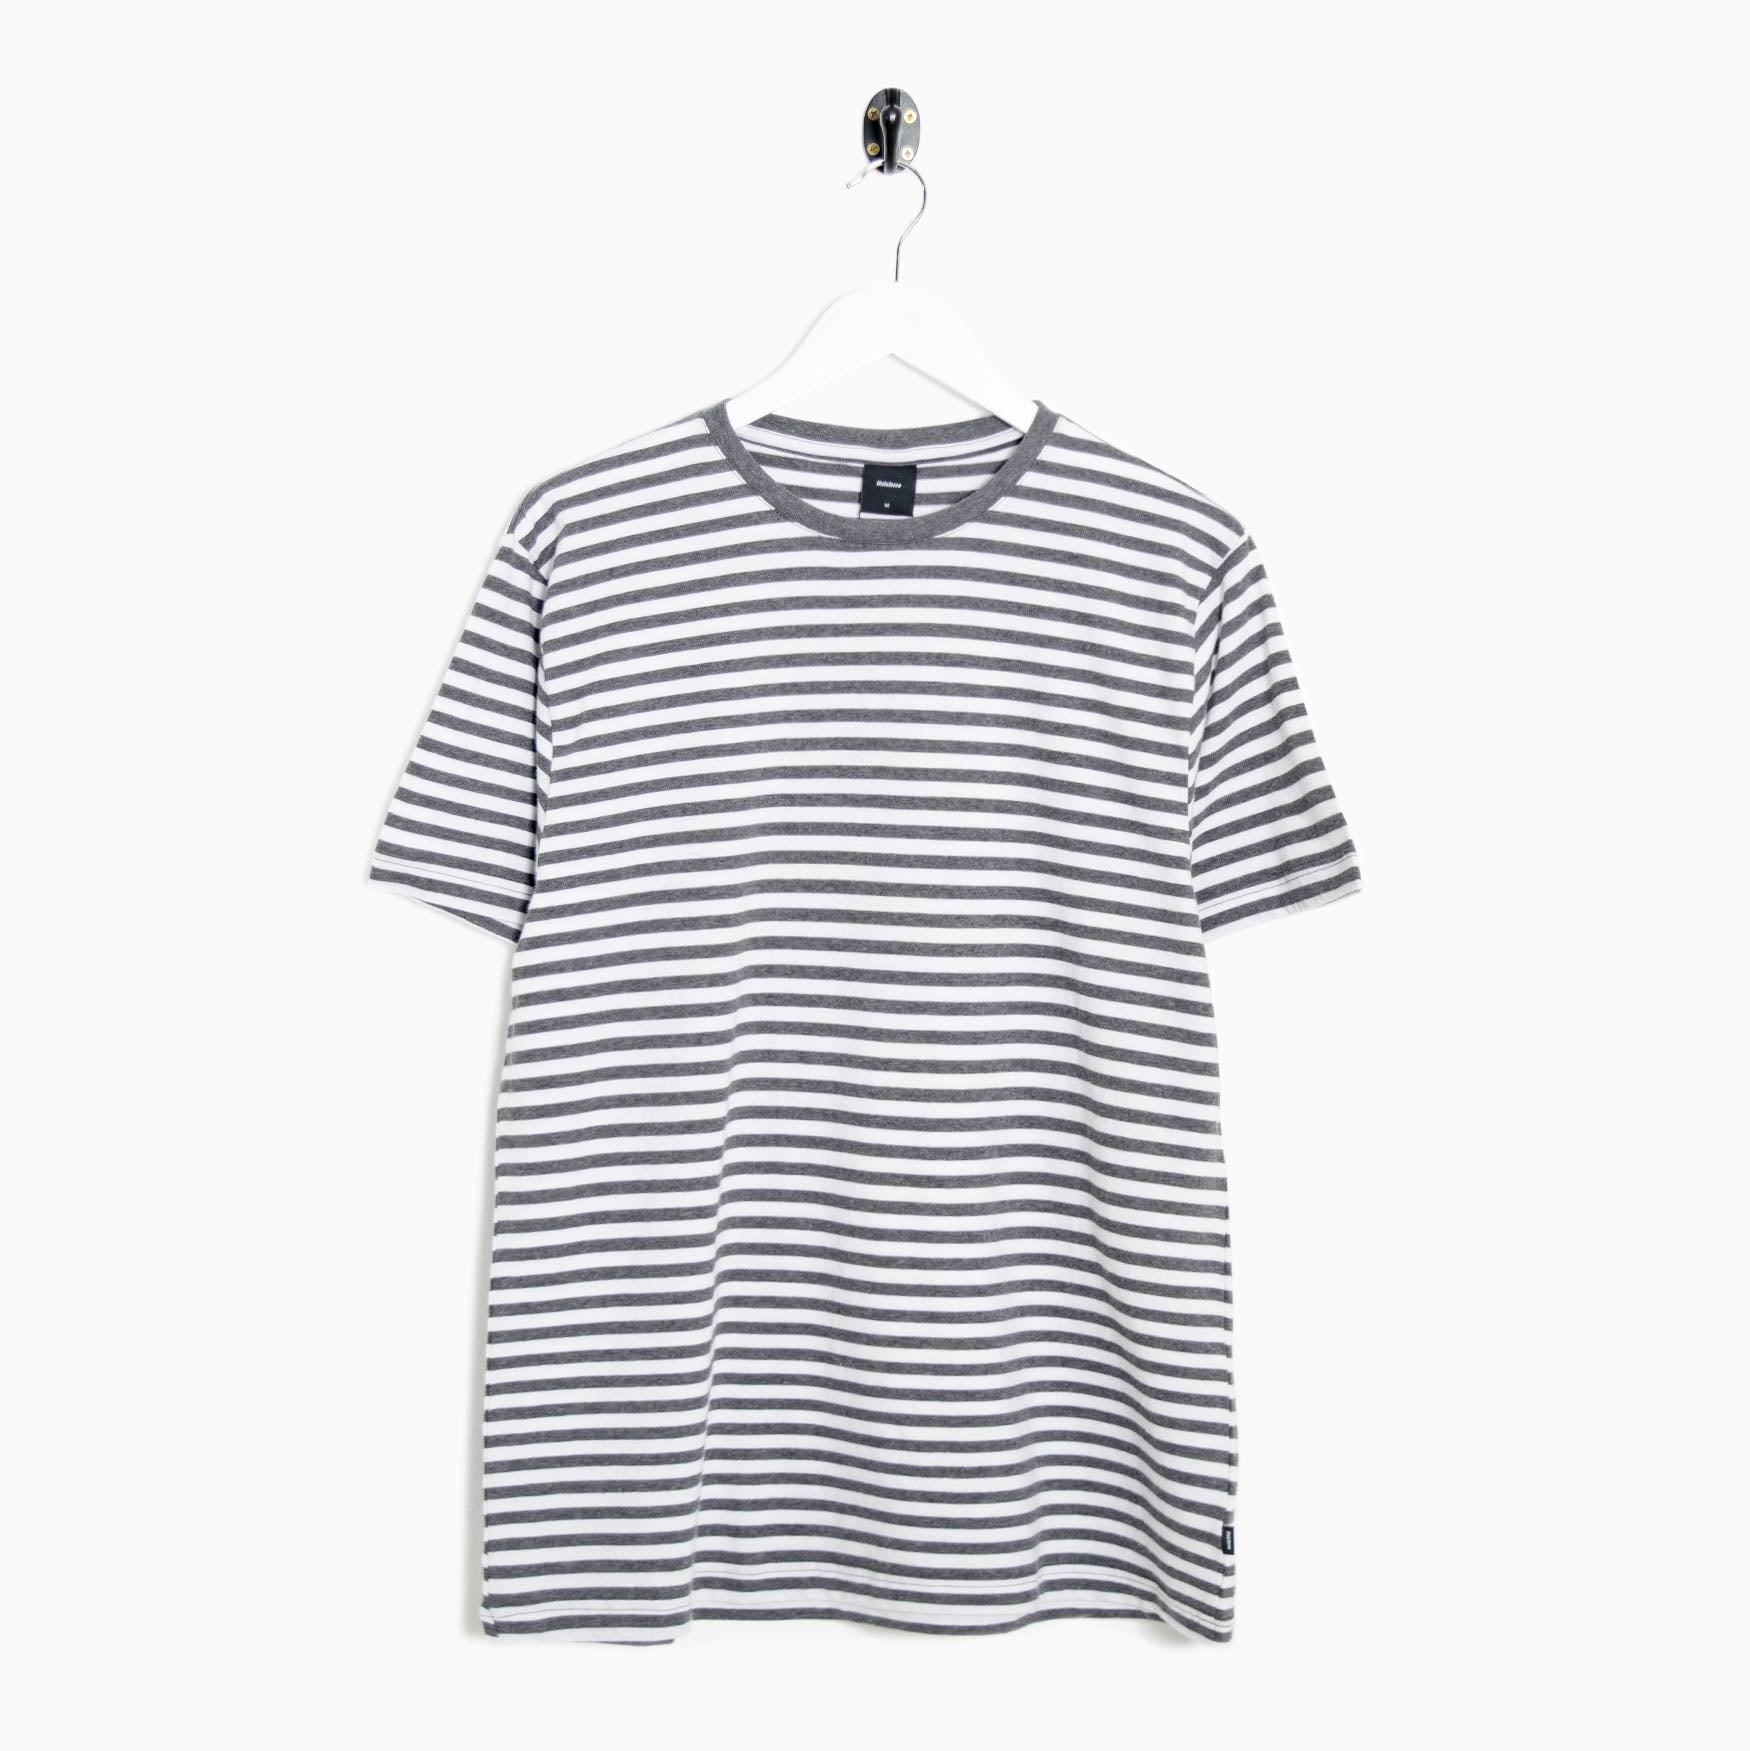 Finisterre Bannel Stripe T-Shirt - Charcoal / White Not Listed - CARTOCON